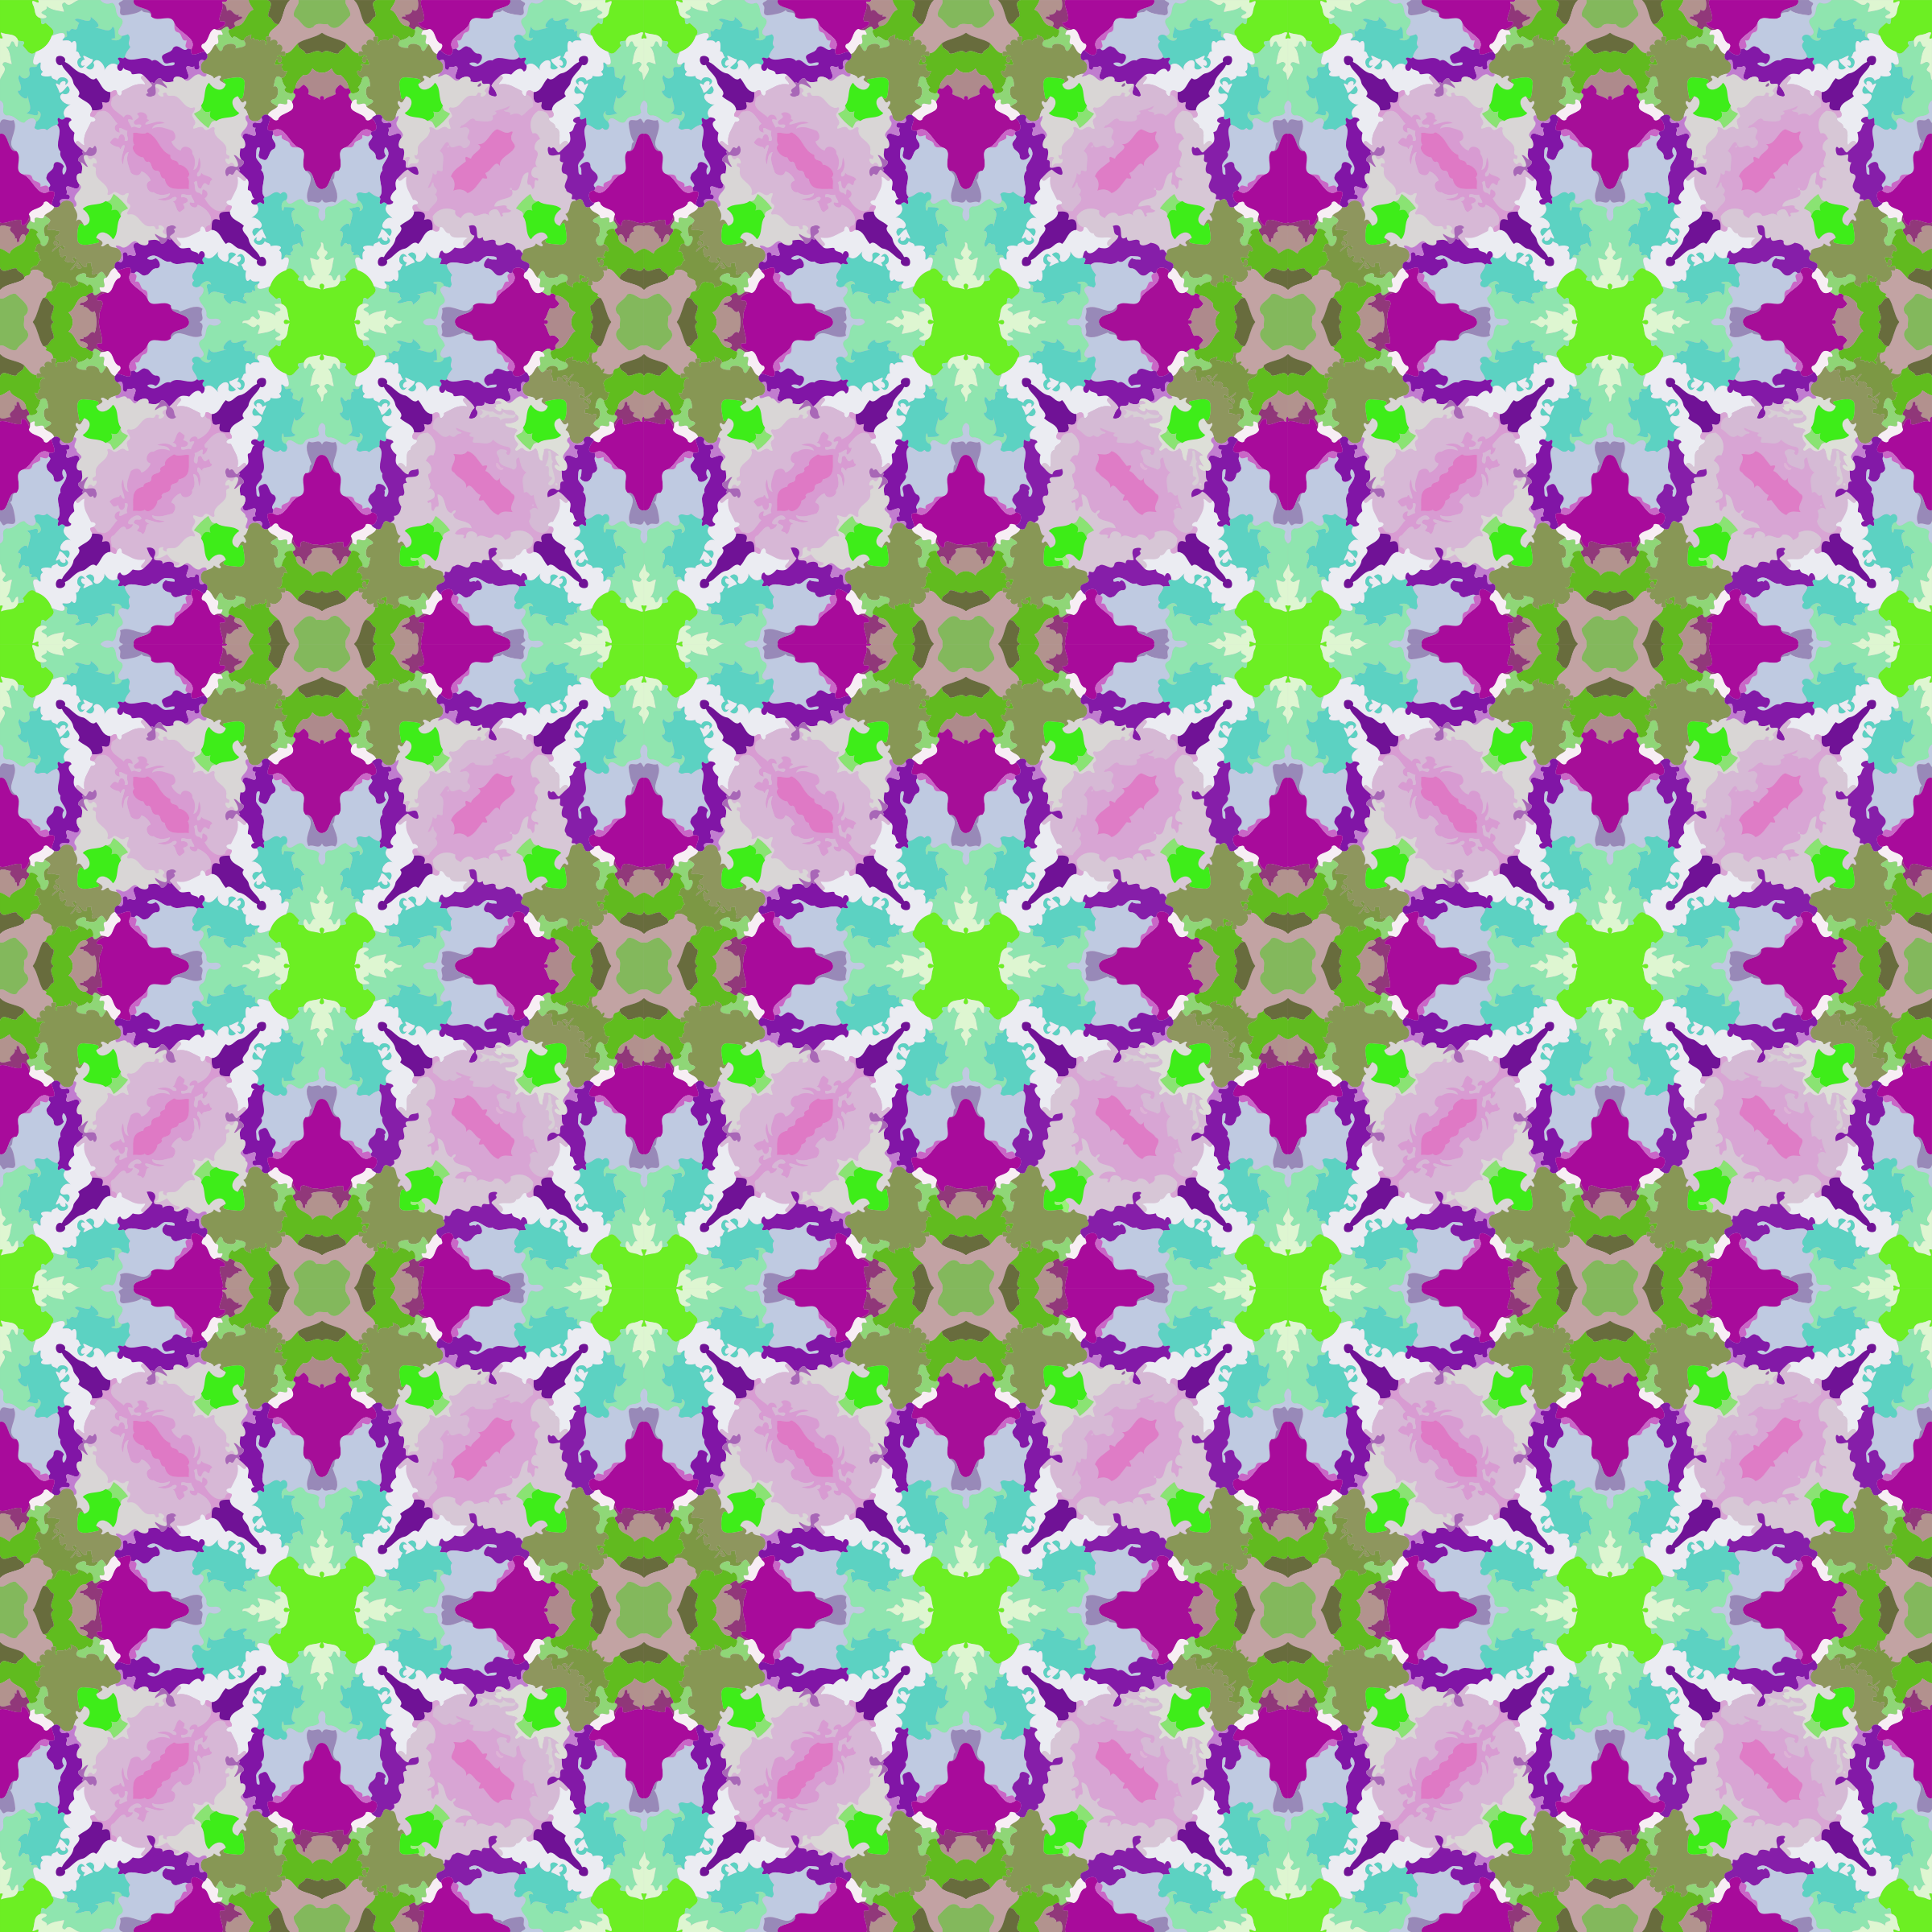 Background pattern 224 (colour 3) by Firkin